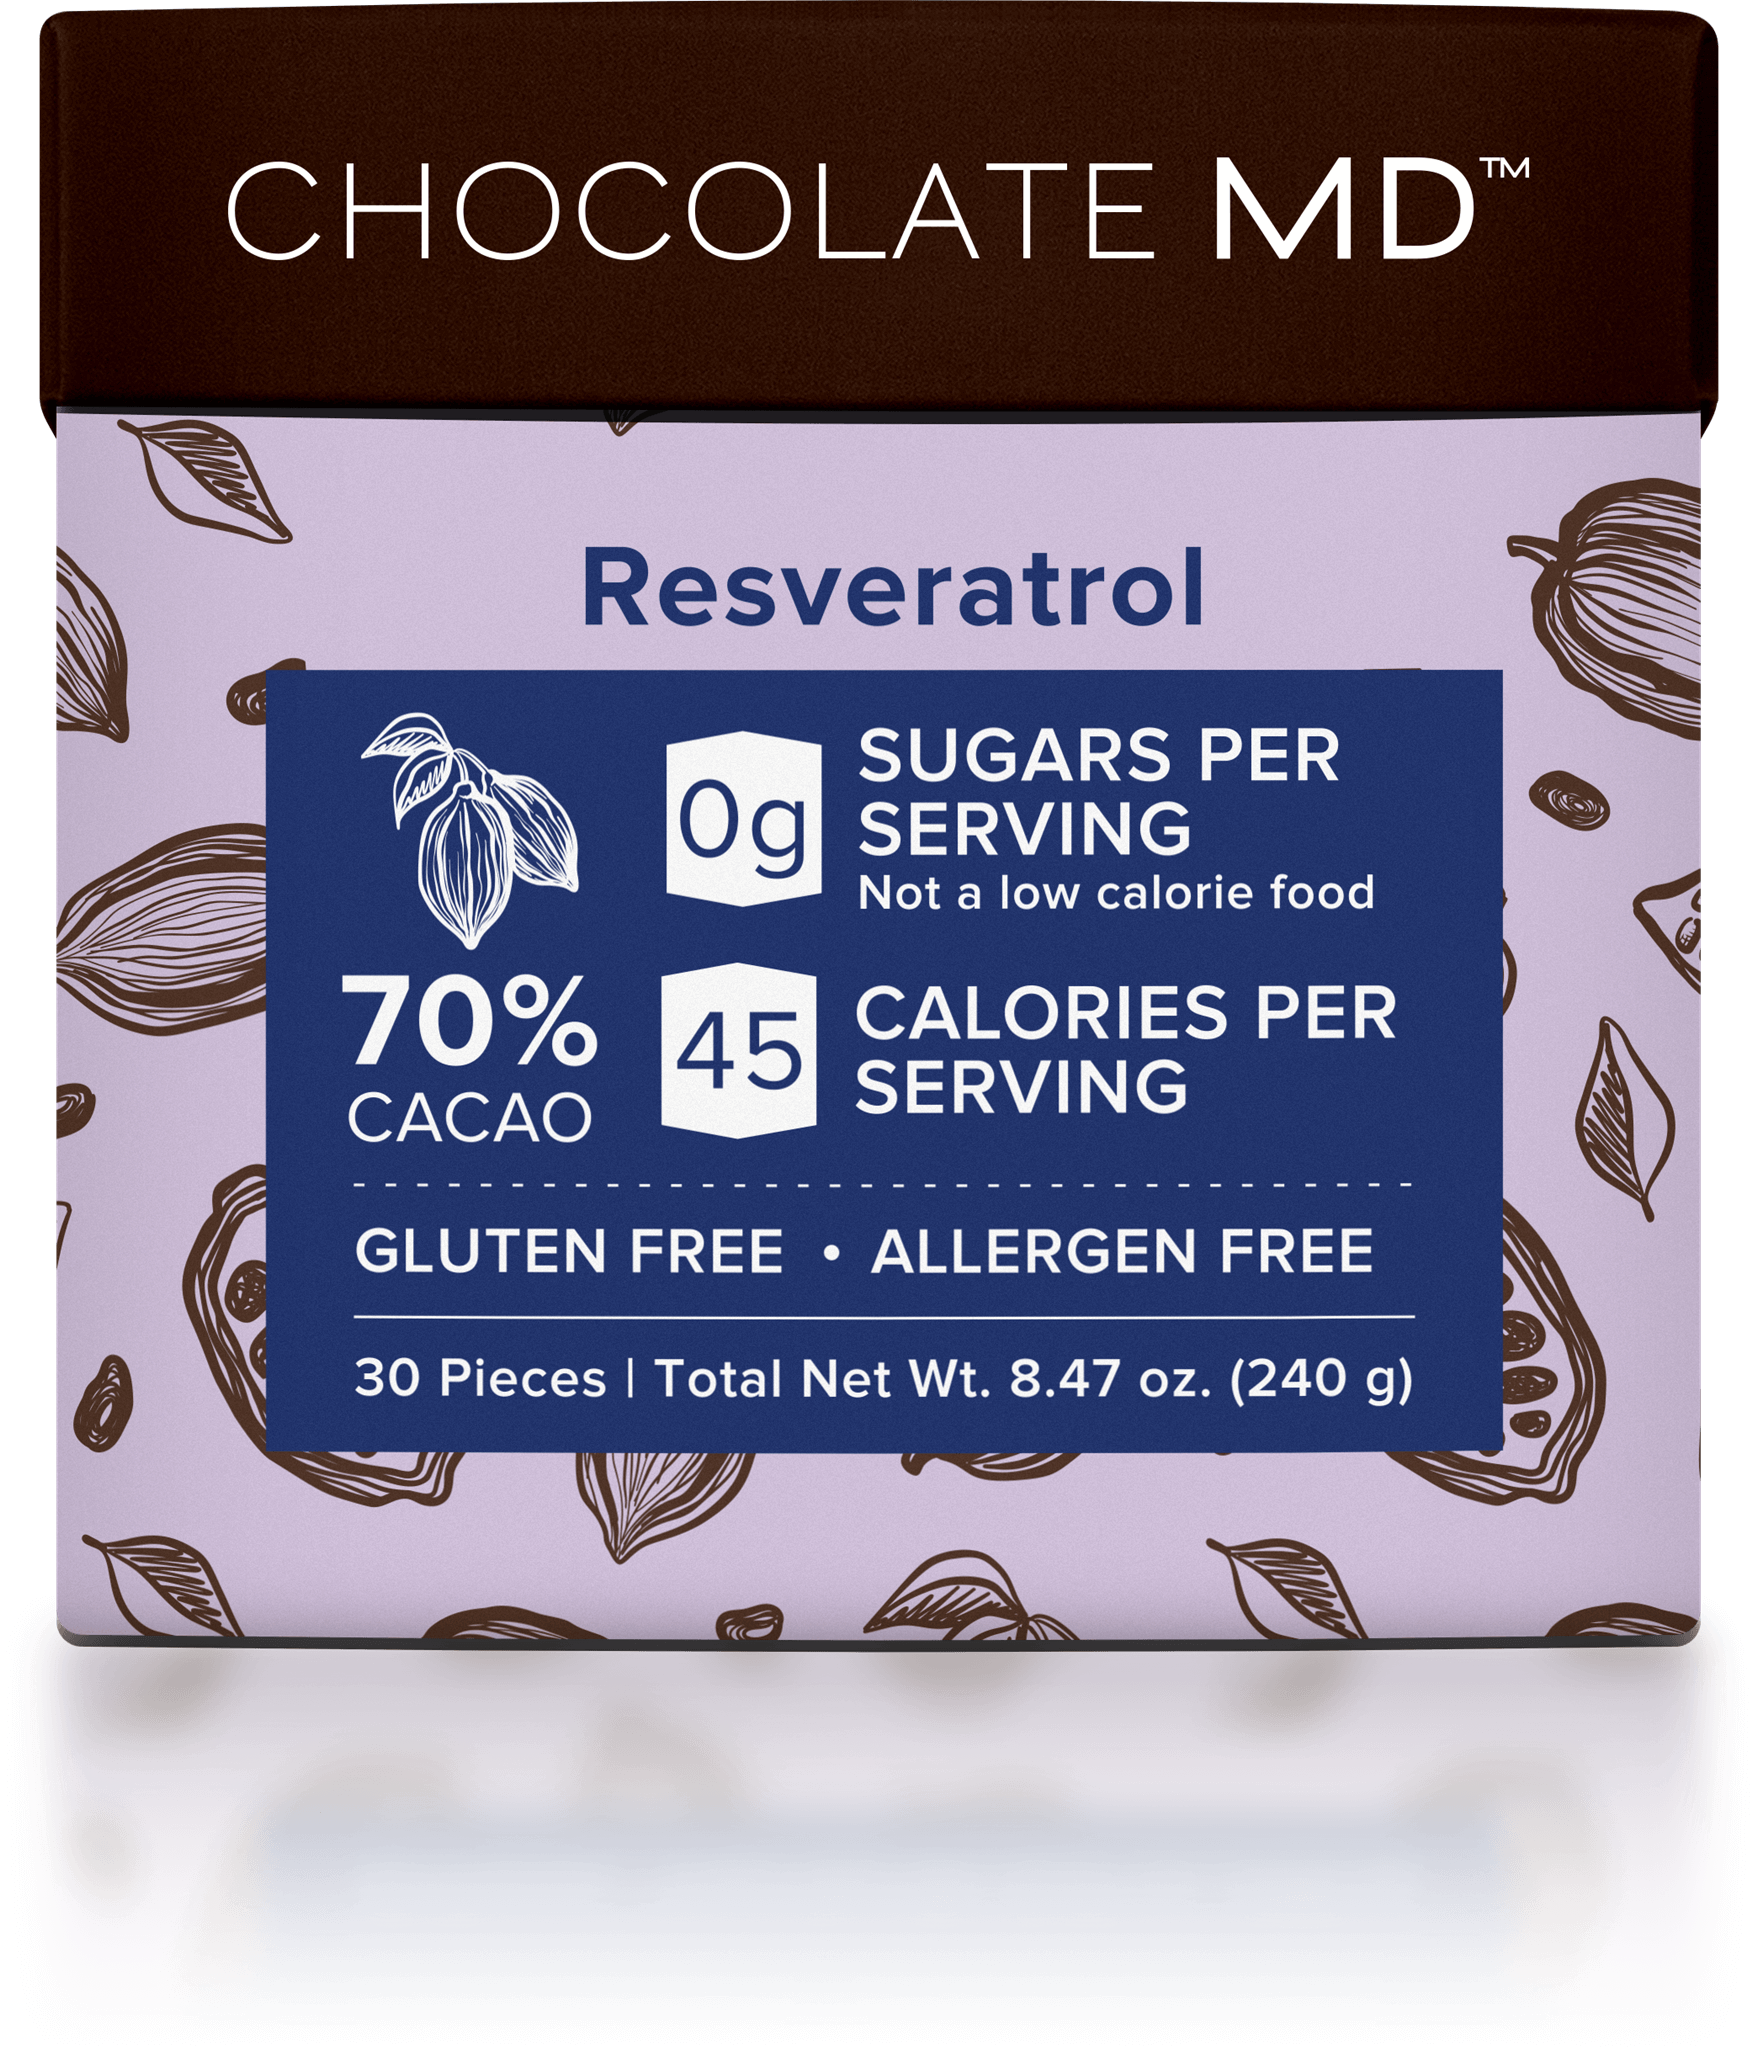 Chocolate MD – Resveratrol